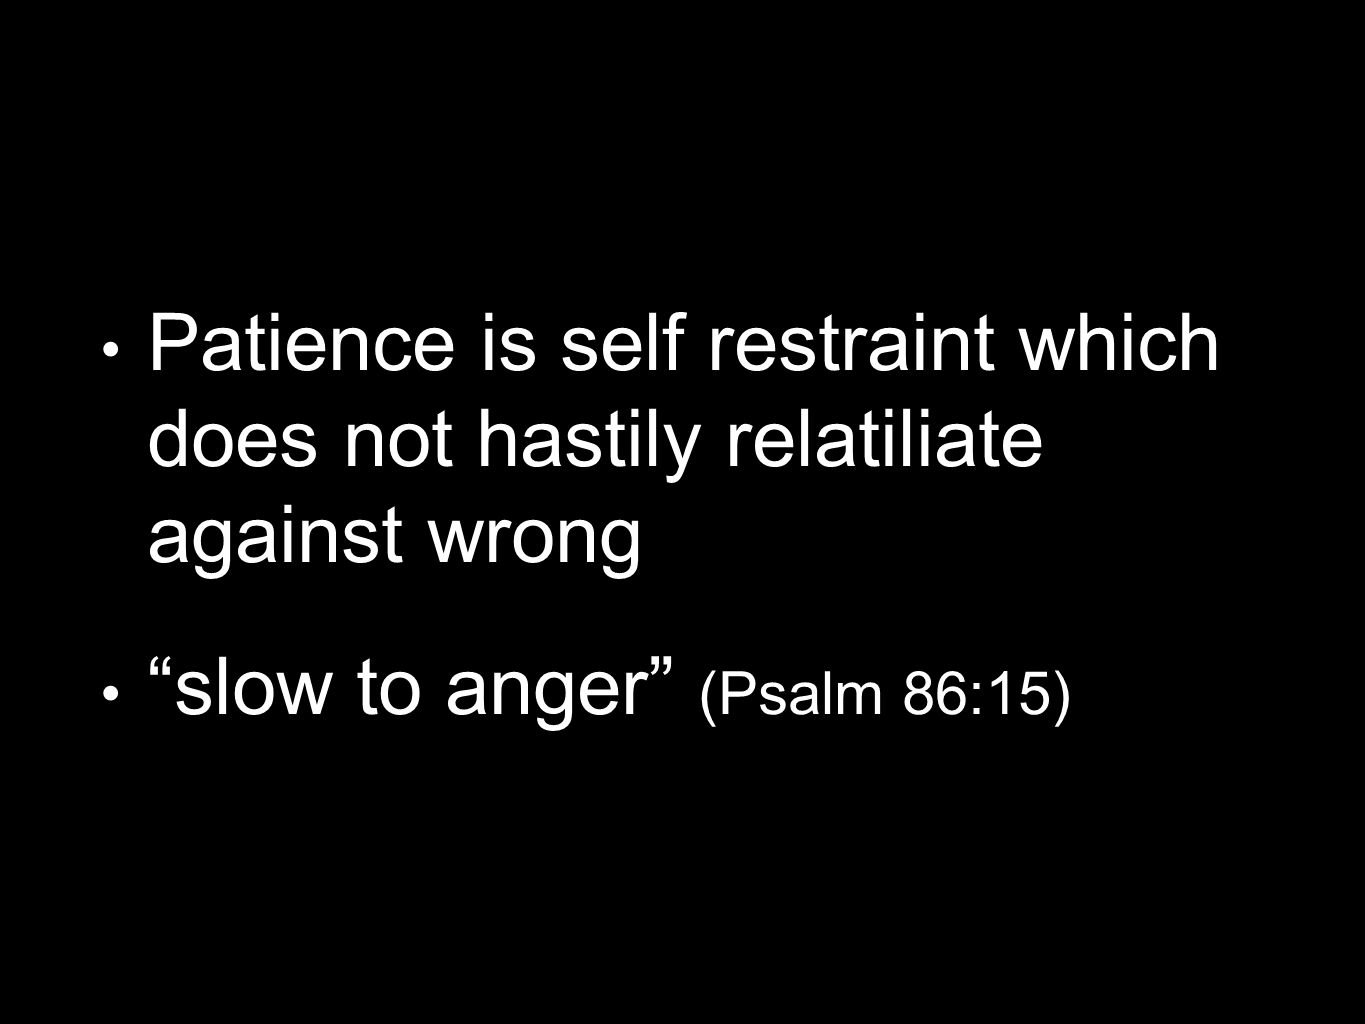 Patience is having a slow fuse